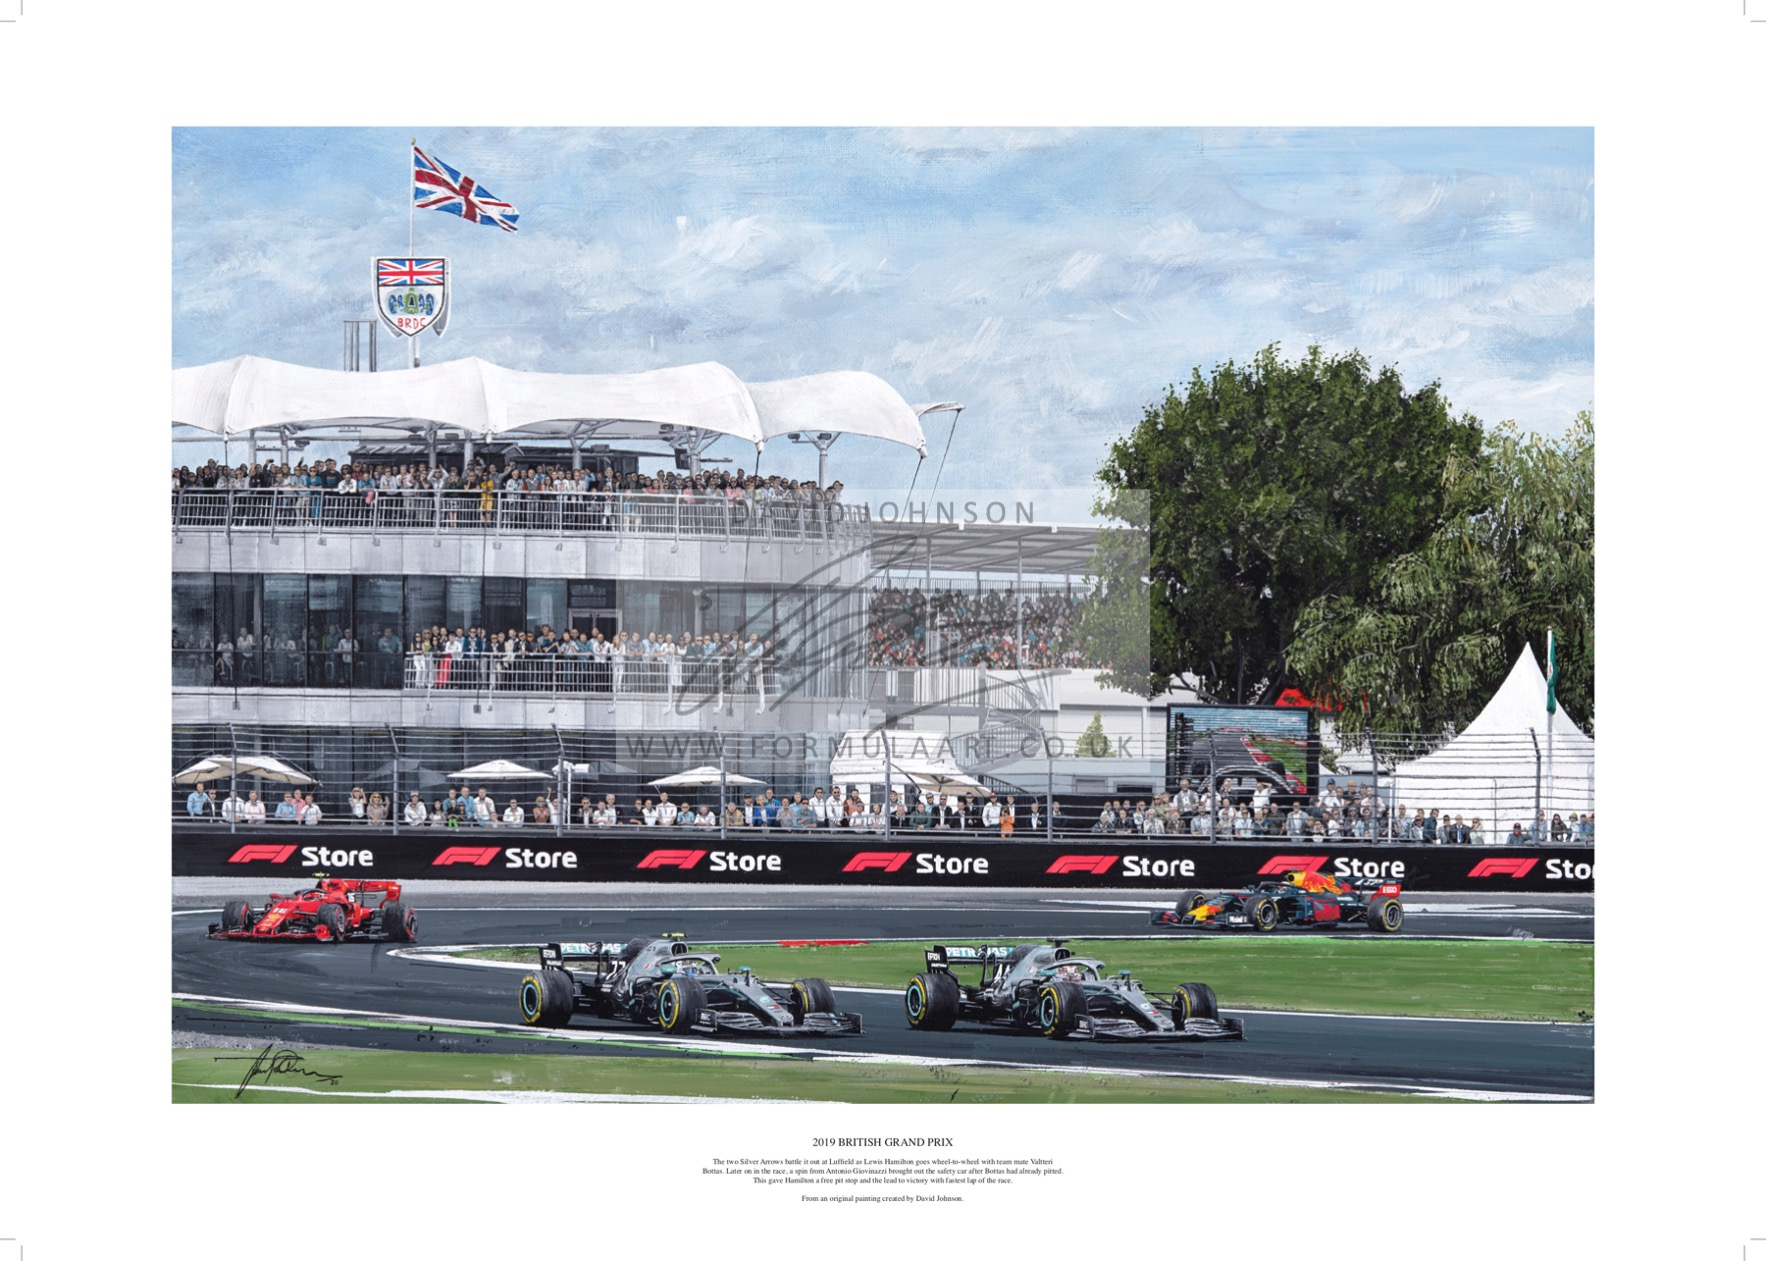 2019 Silverstone Lithograph (RRP £39.99)